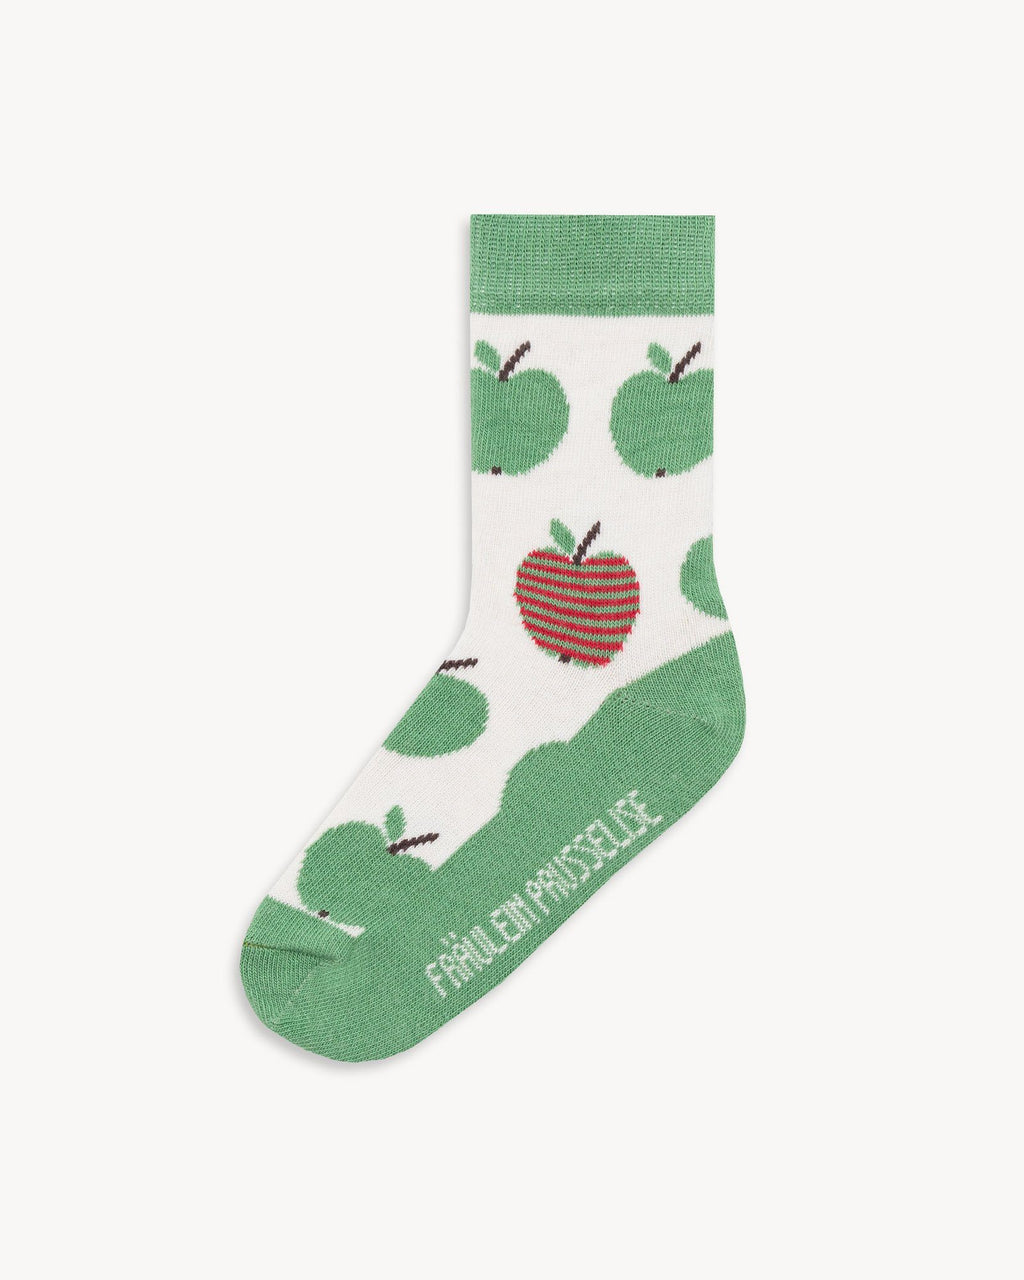 variant_1 | EN Green Socks with Print Kids | DE Grüne Socken mit Print Kinder